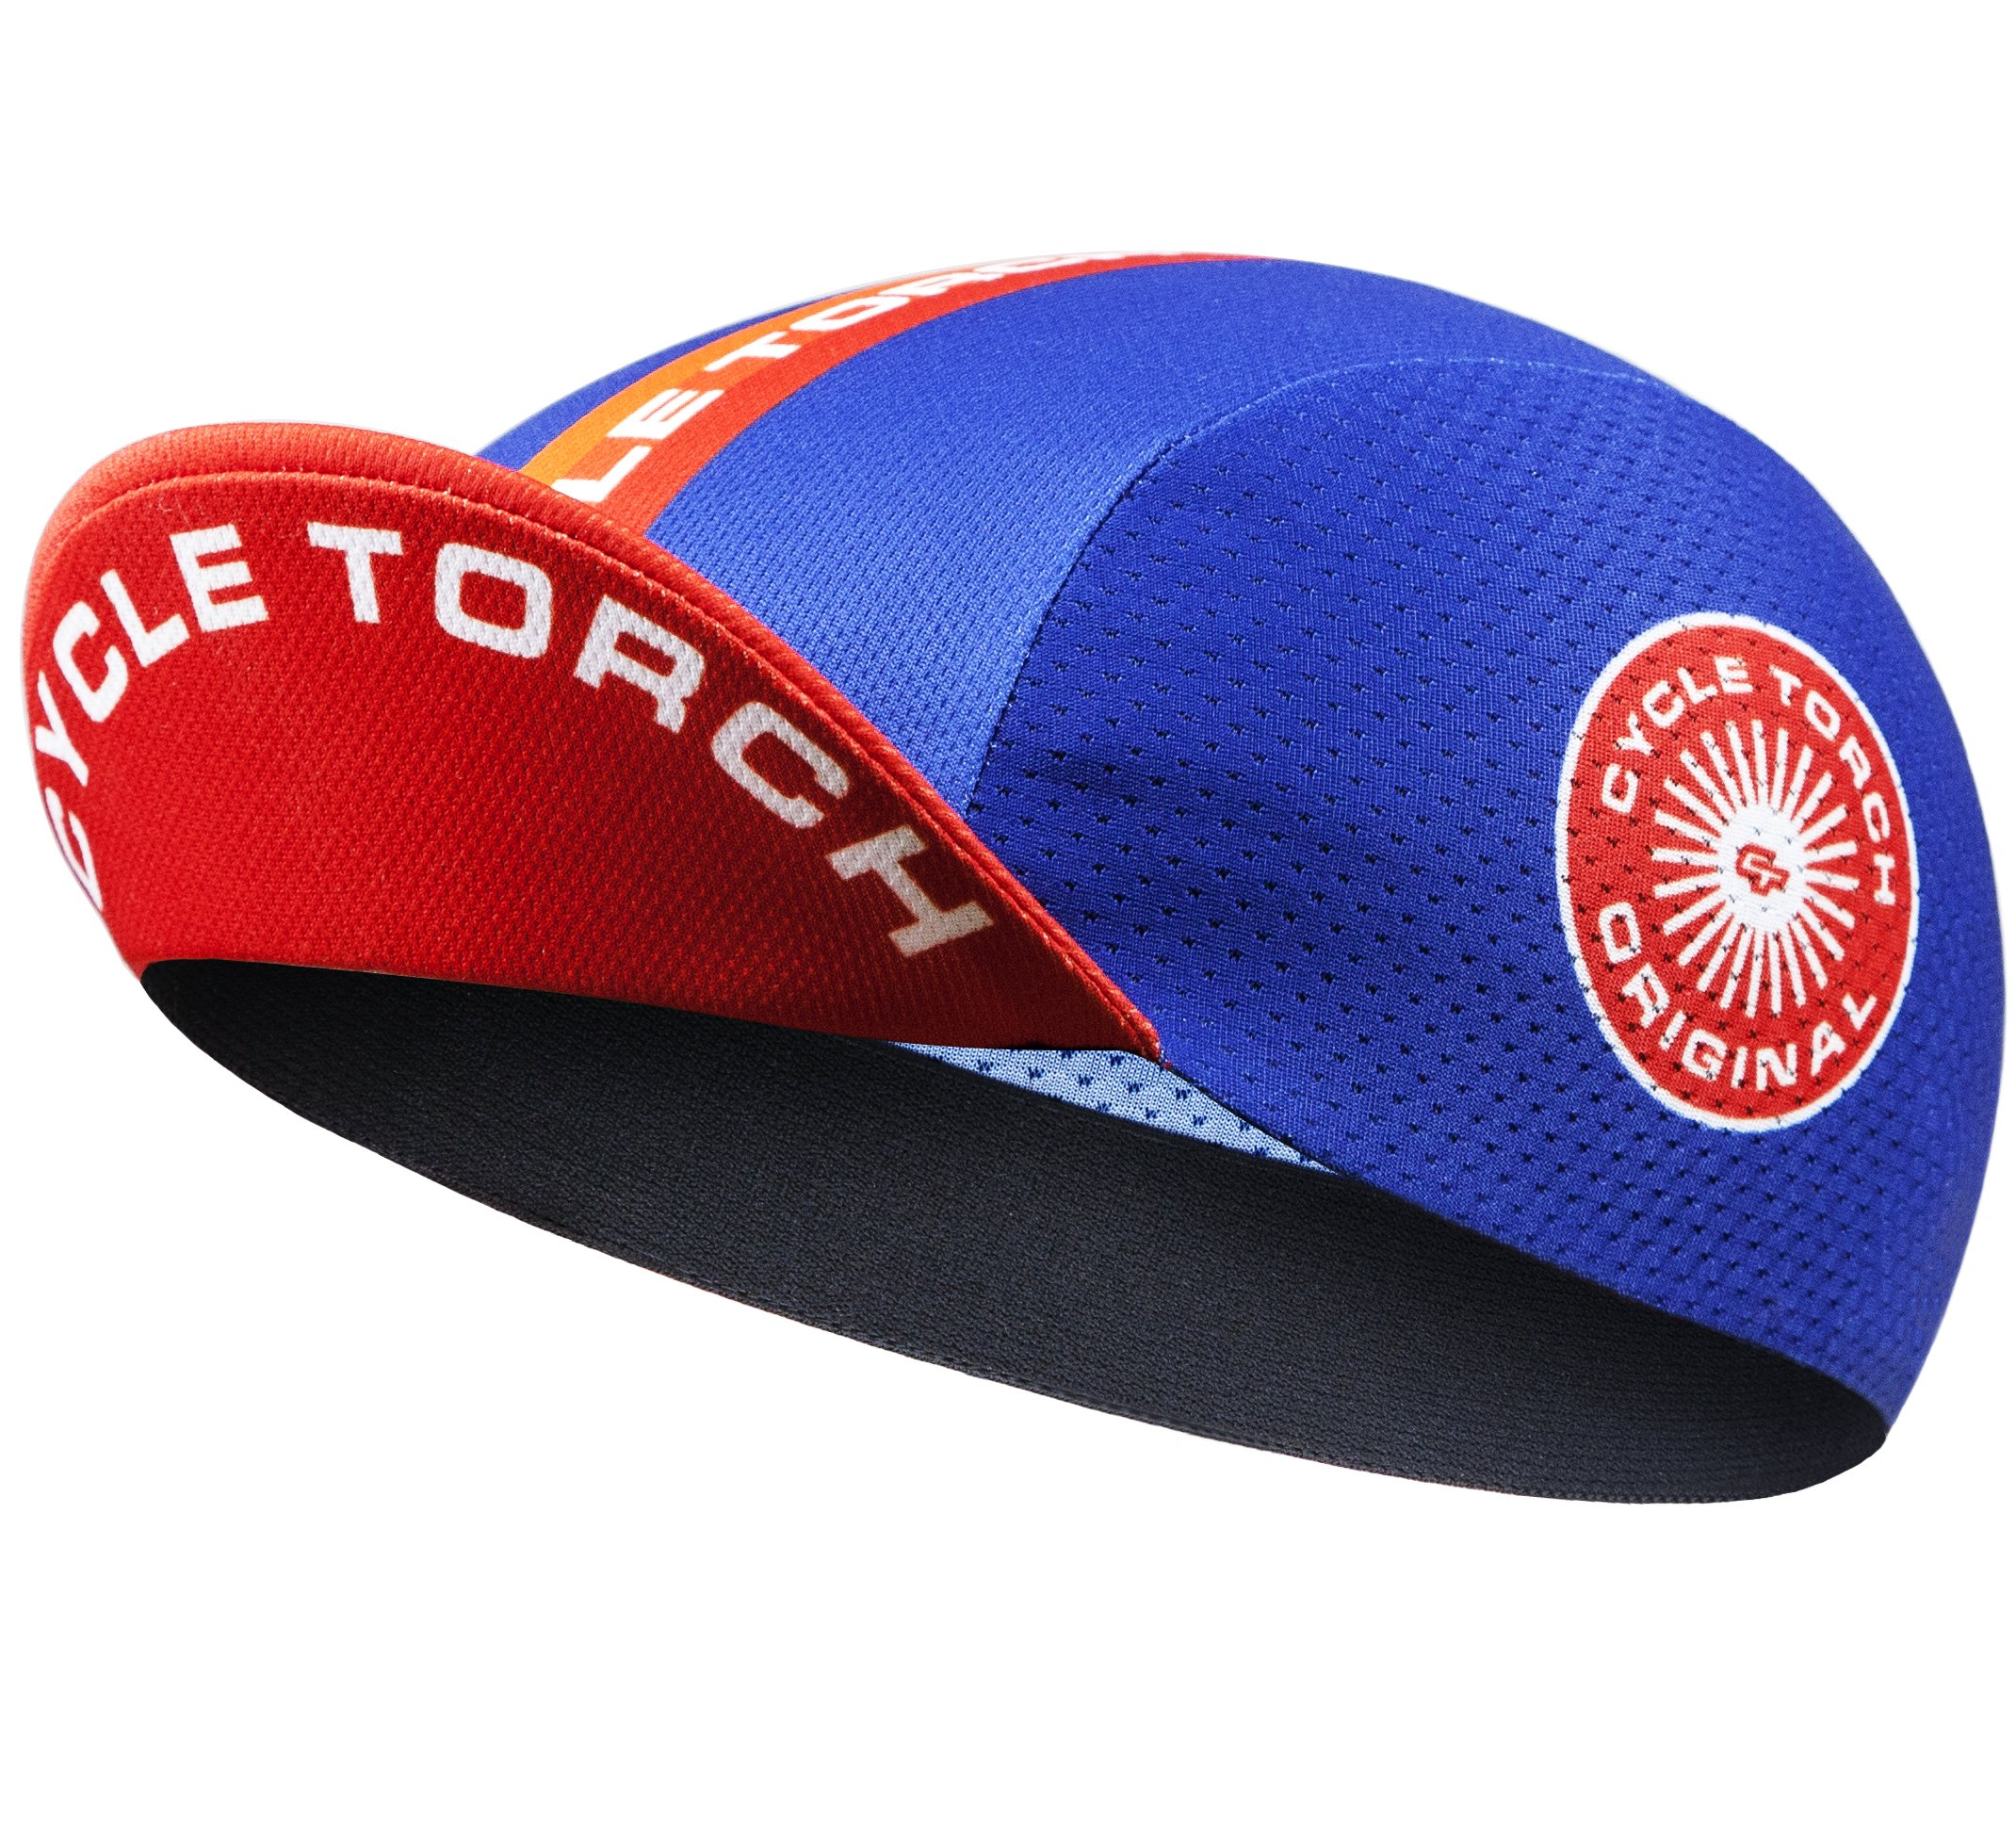 5ecb67bf59d Best Rated in Men s Cycling Caps   Helpful Customer Reviews - Amazon.com